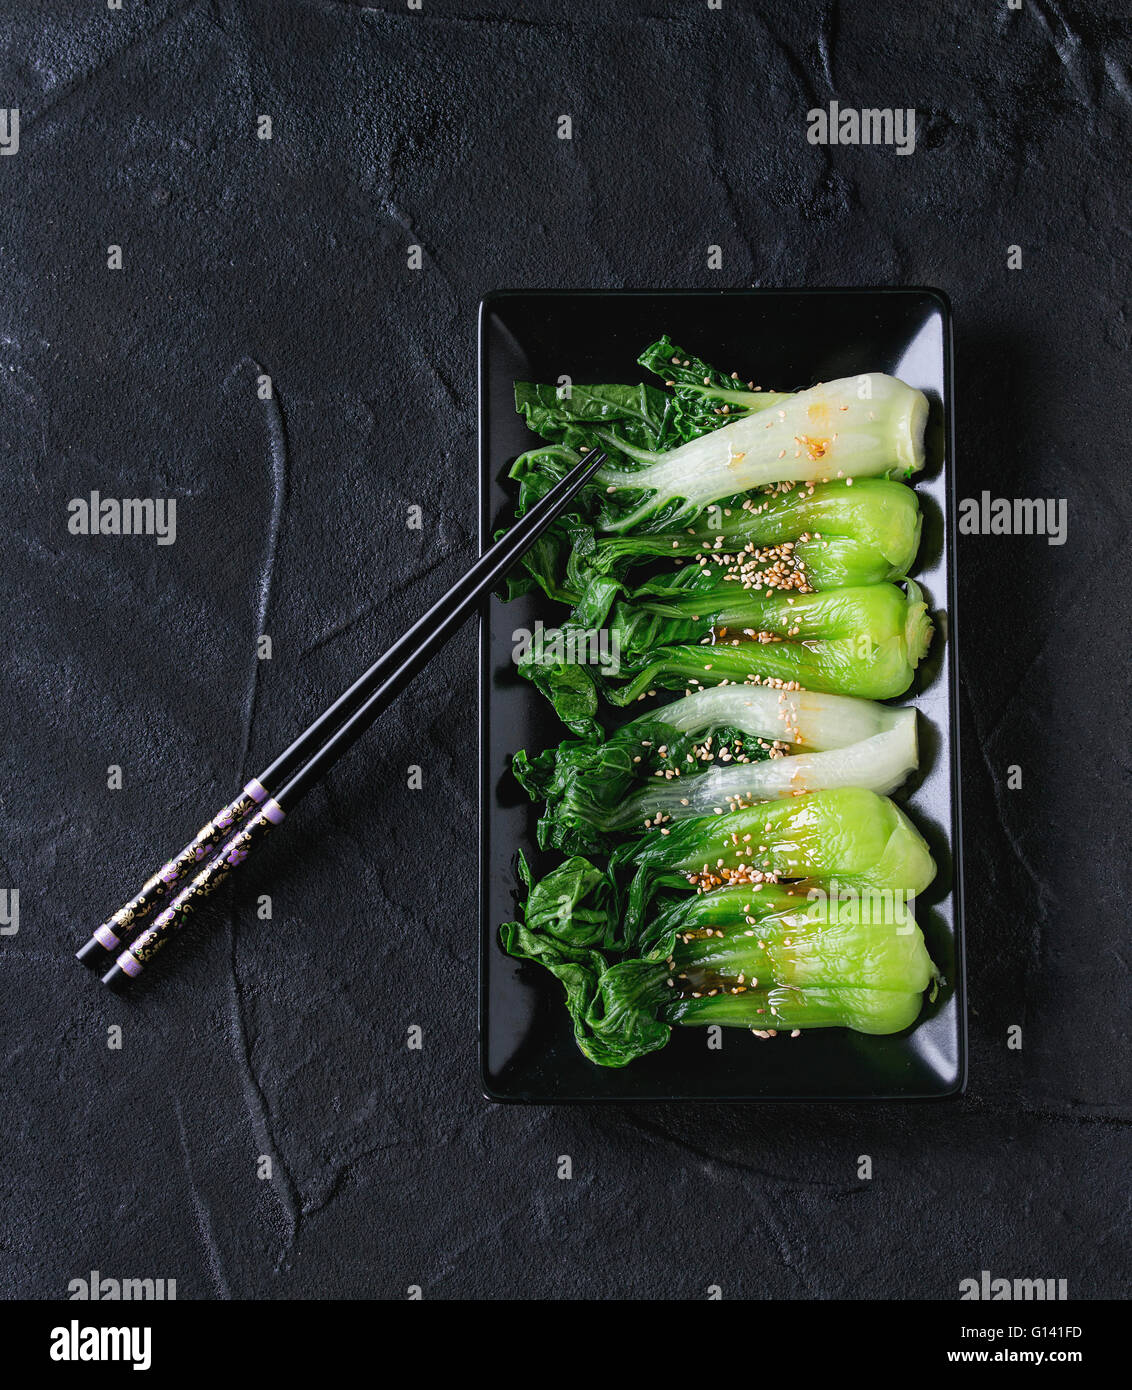 Cooked bok choy with sesame seeds and chili pepper olive oil in black square ceramic plate with black chopsticks - Stock Image